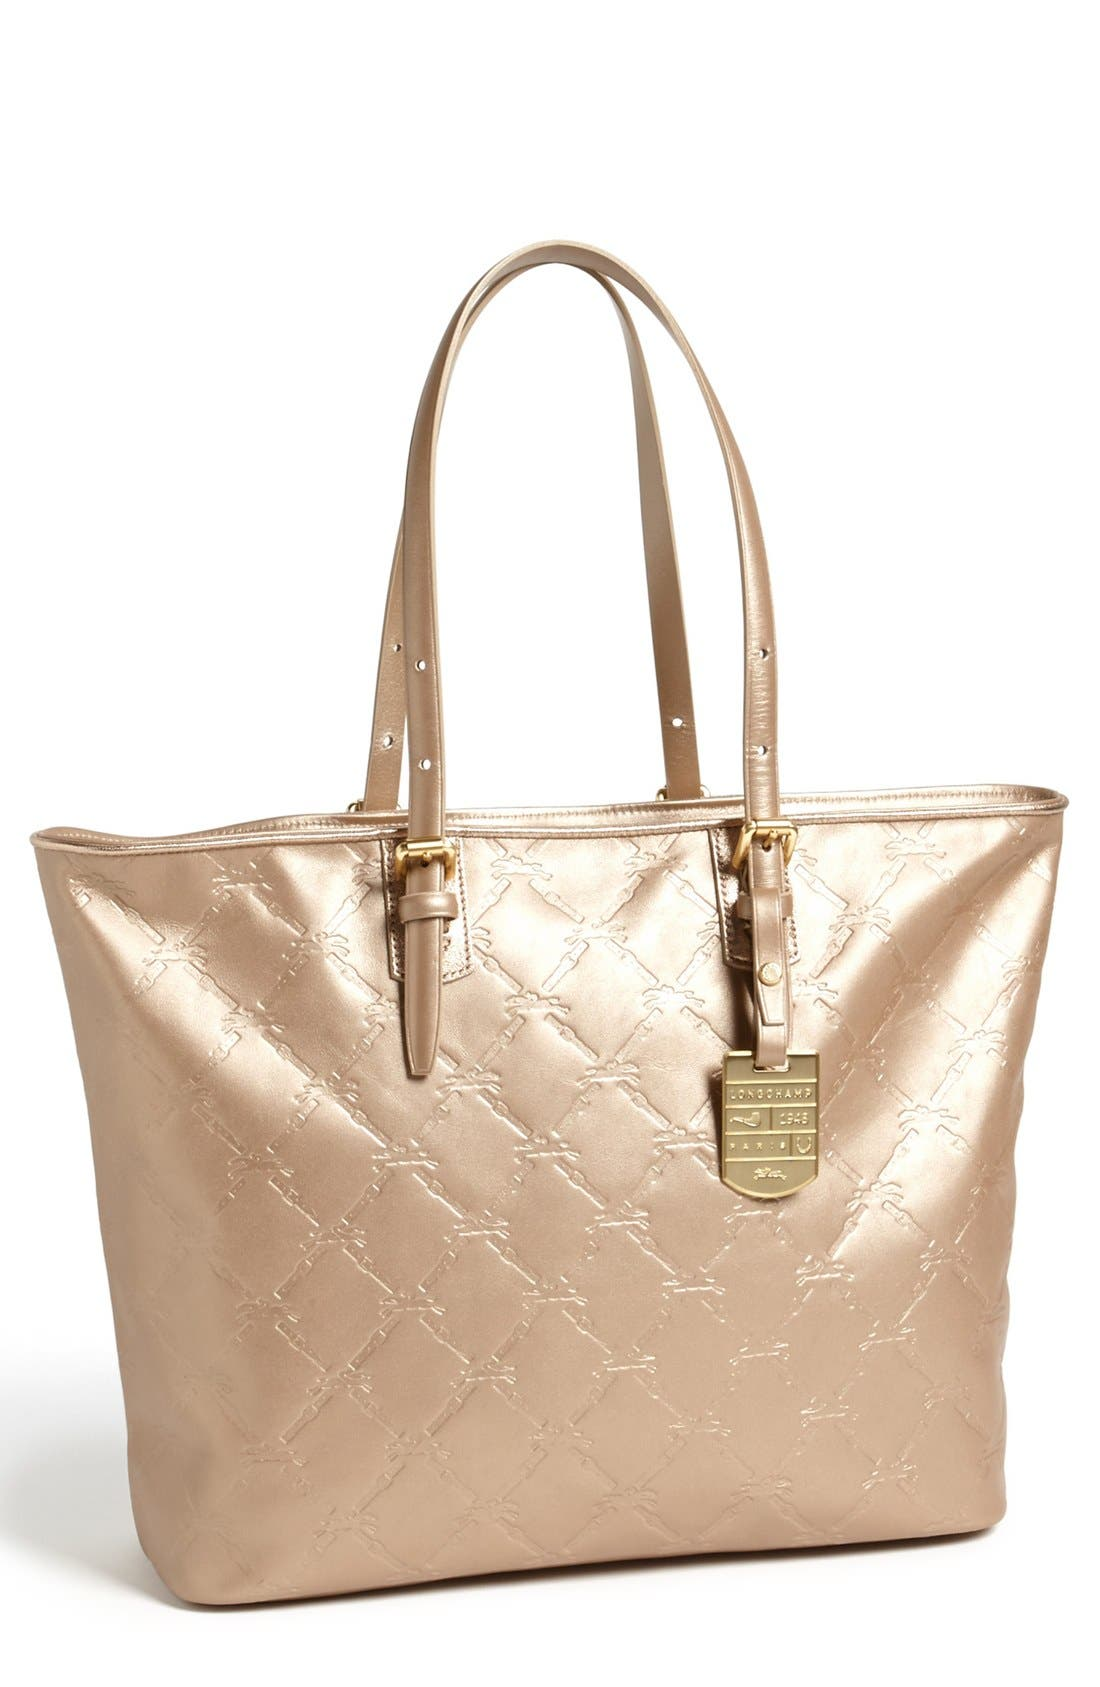 Main Image - Longchamp 'Large LM Cuir' Leather Tote